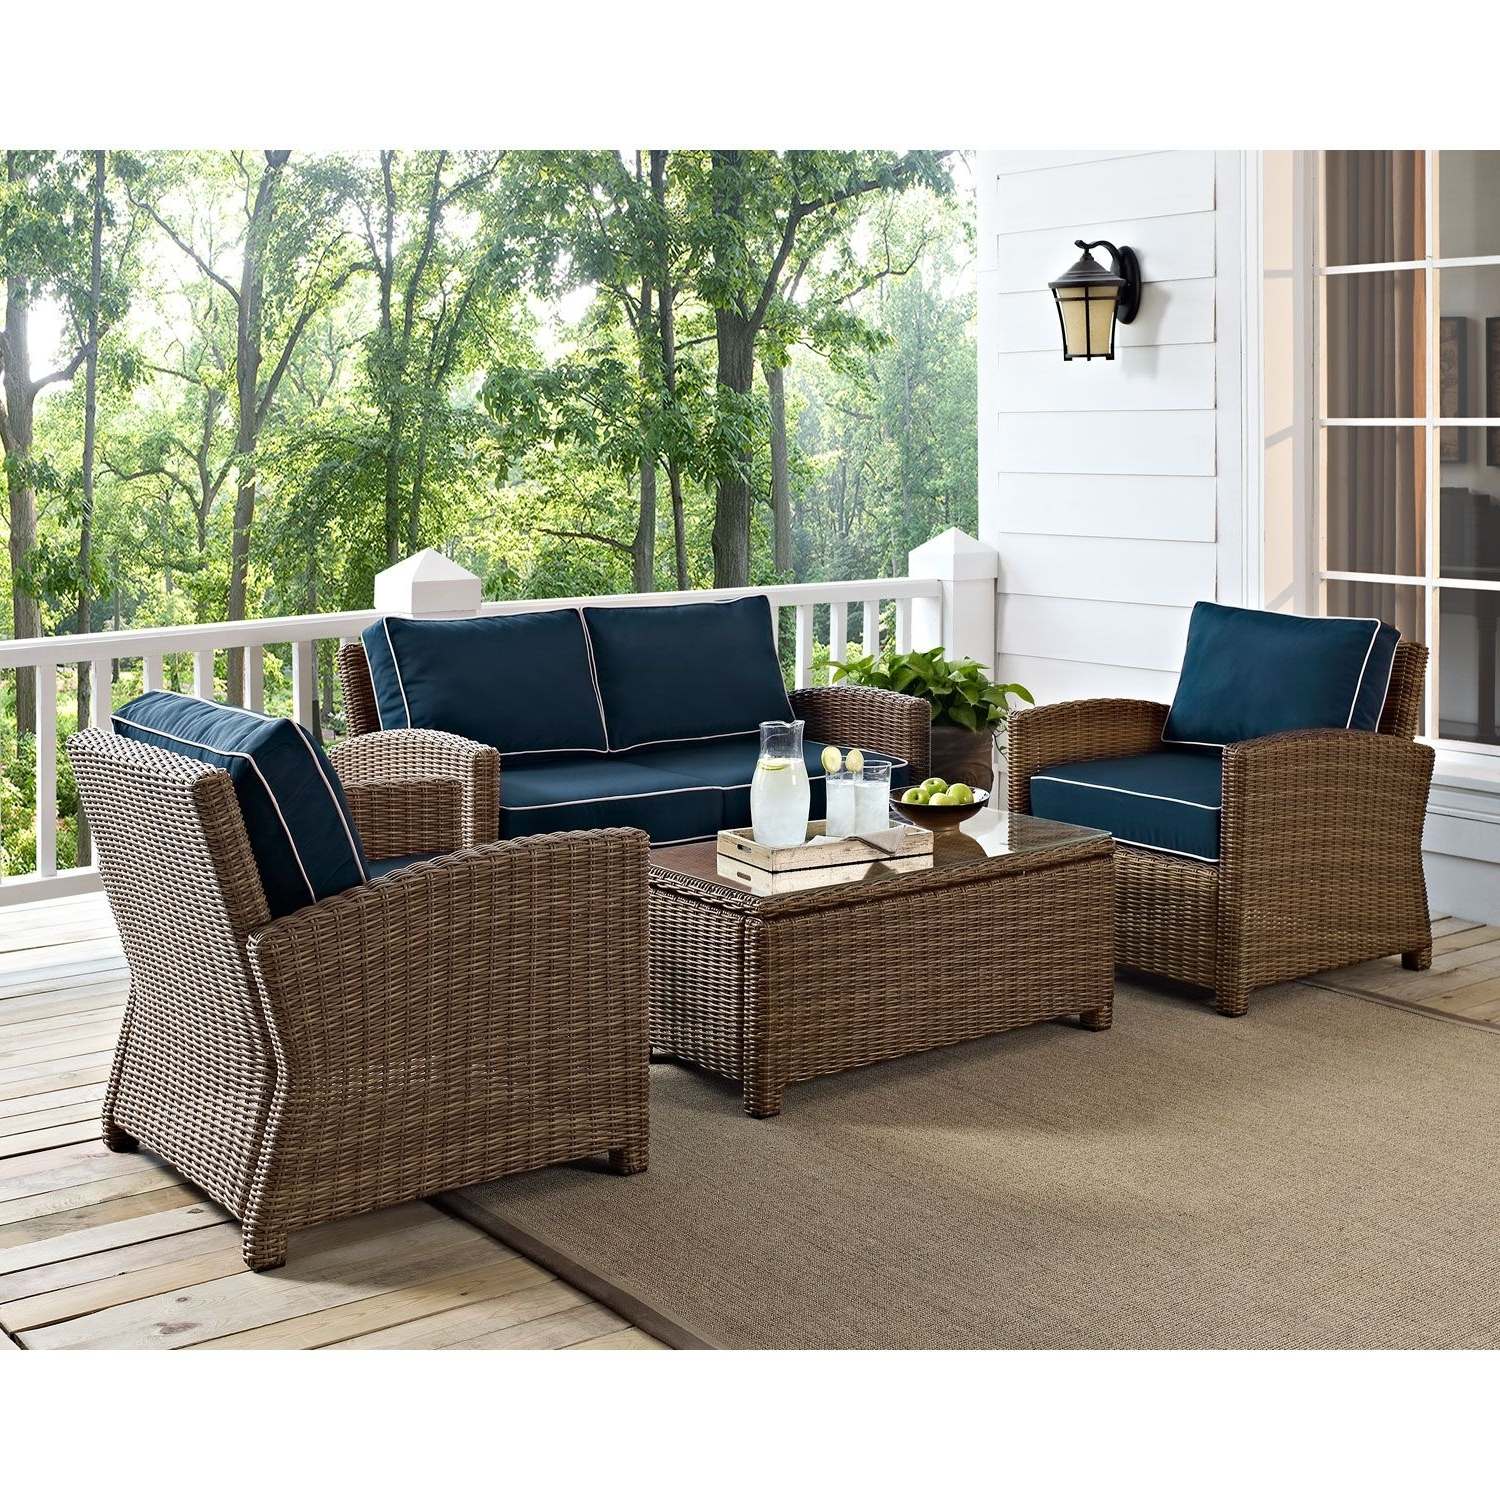 Patio Conversation Sets With Blue Cushions Regarding Current Crosley Furniture Bradenton 4 Piece Outdoor Wicker Seating Set With (View 11 of 15)